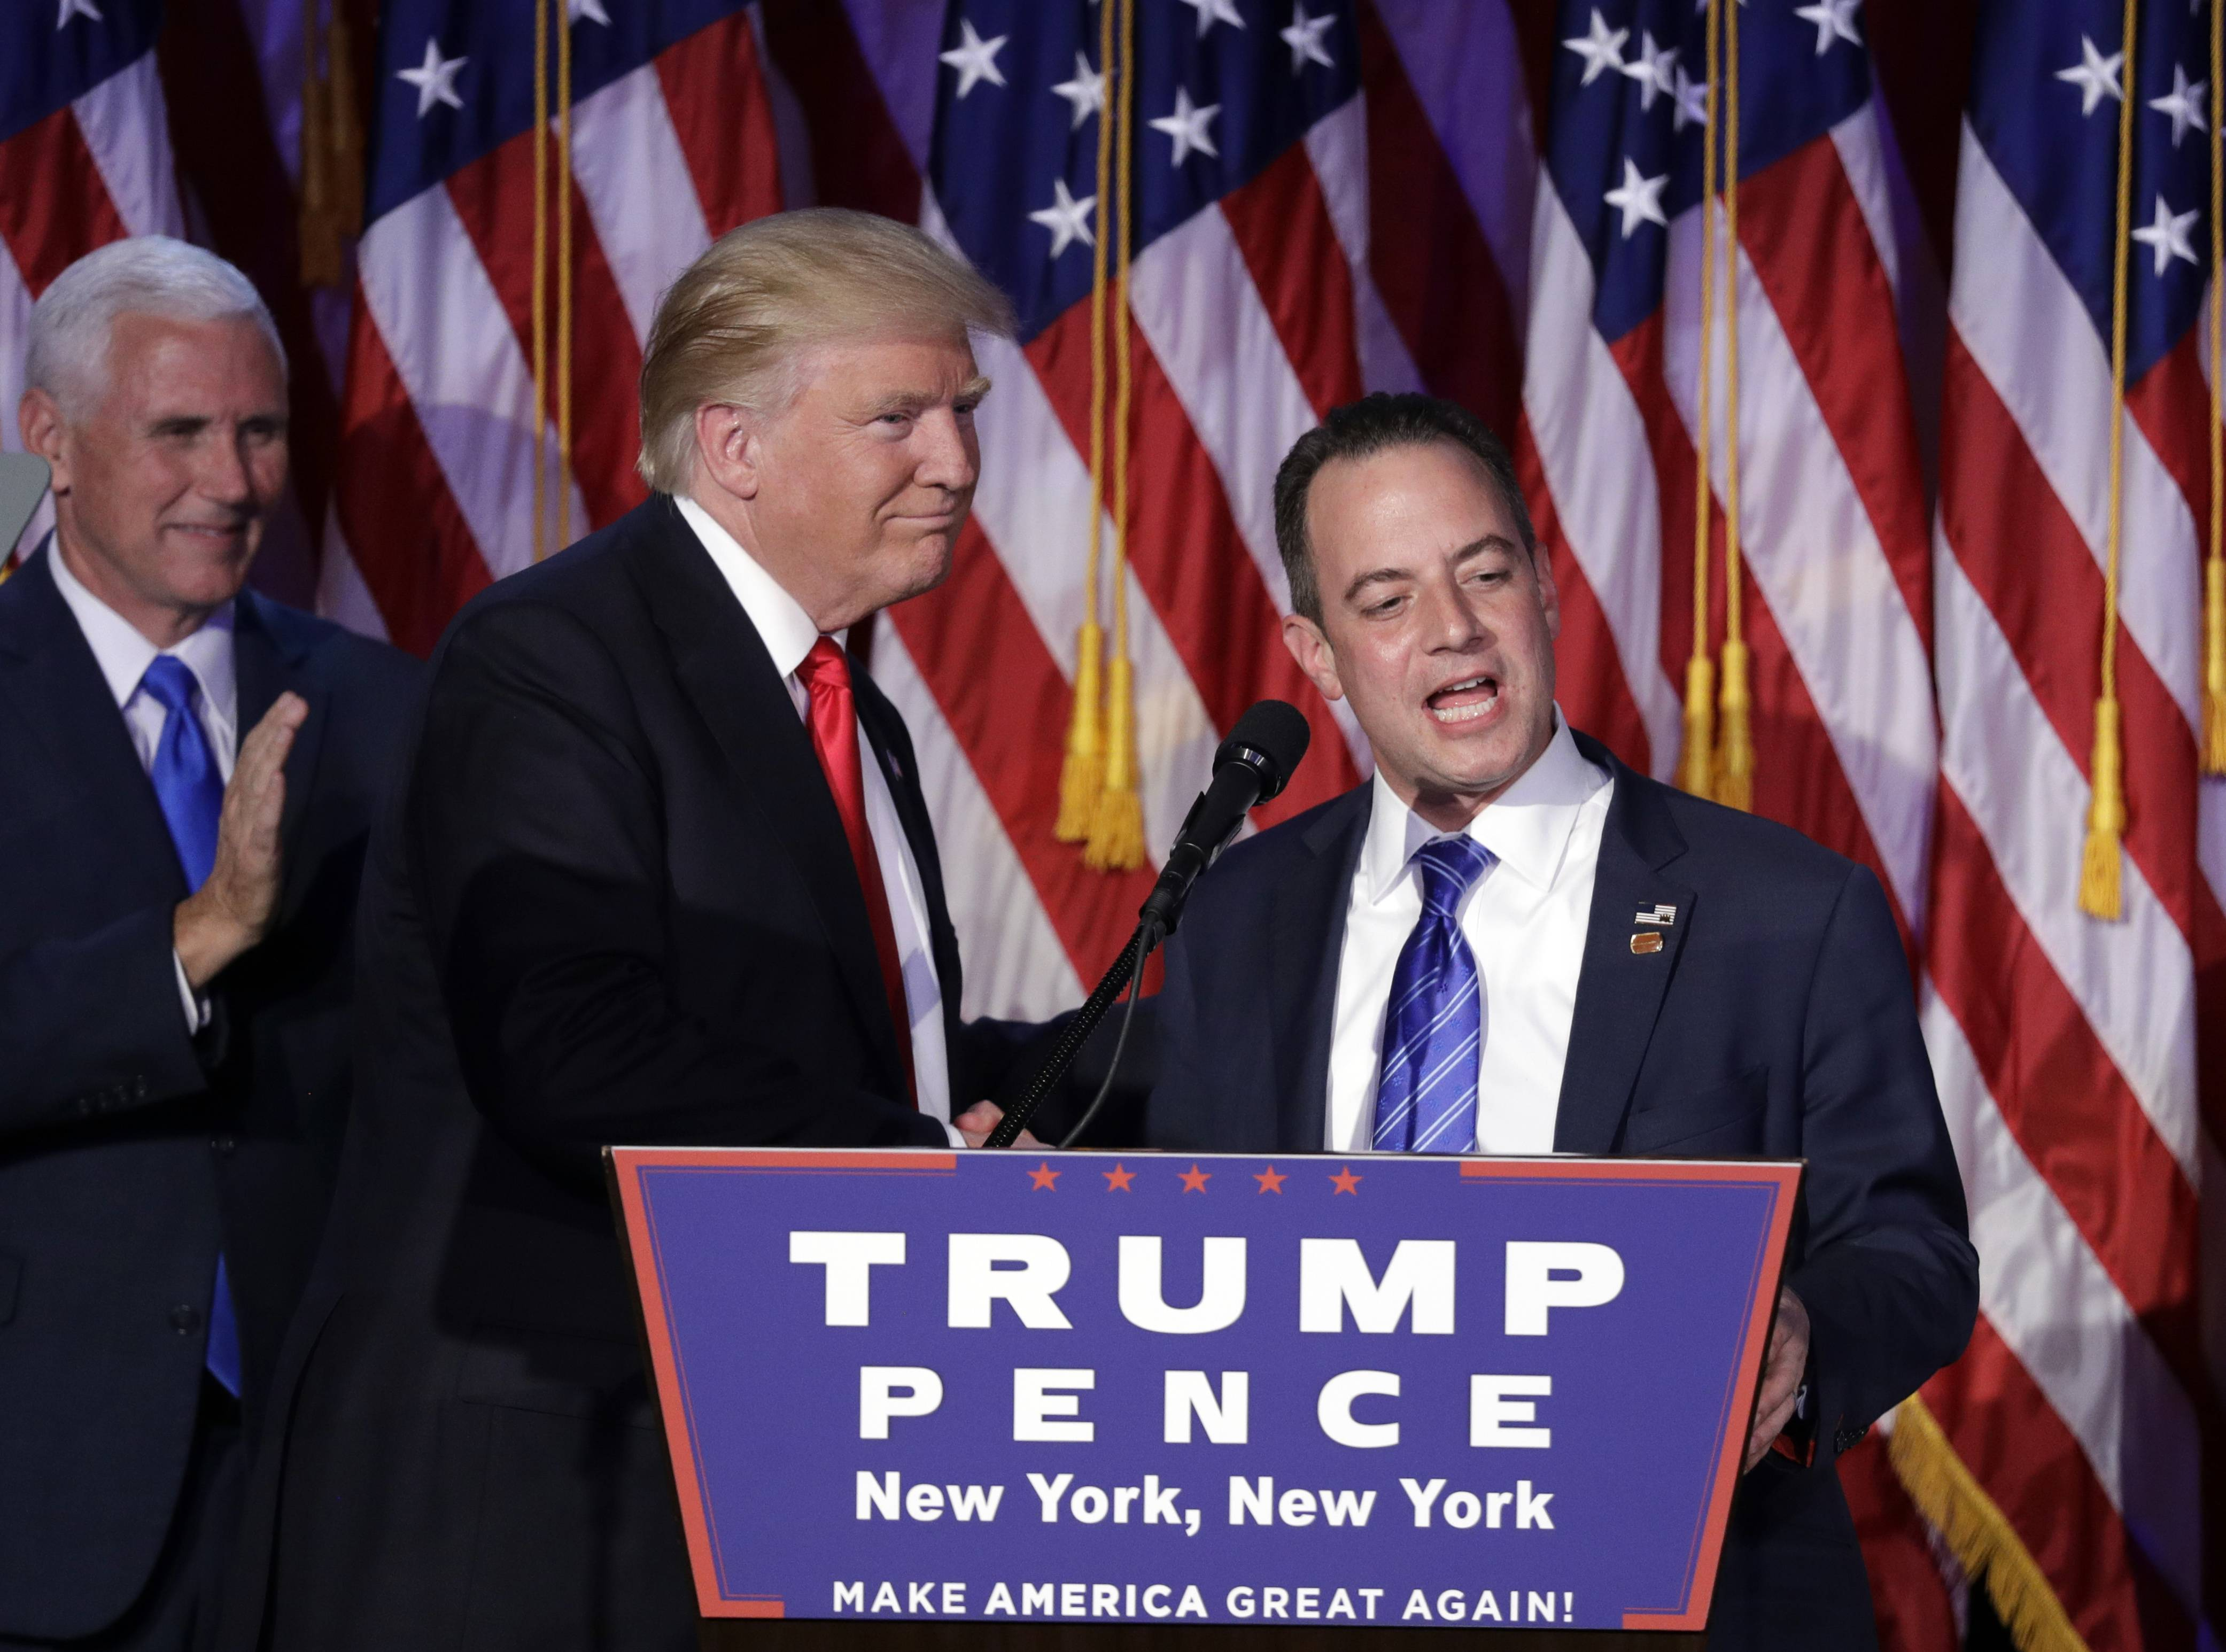 In this Wednesday, Nov. 9, 2016, file photo, President-elect Donald Trump, left, stands with Republican National Committee Chairman Reince Priebus during an election night rally in New York. Trump on Sunday named Priebus as his White House chief of staff.